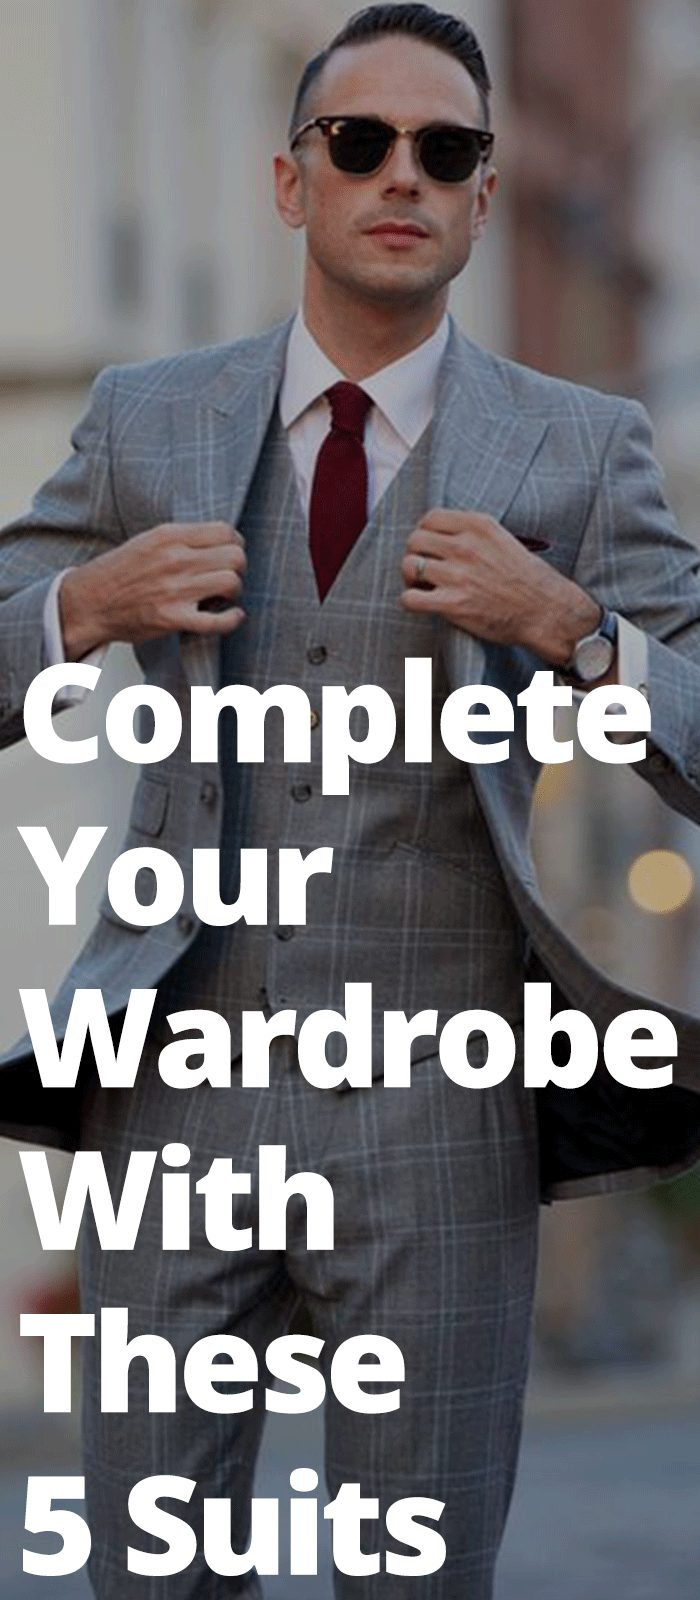 Complete Your Wardrobe With These 5 Suits